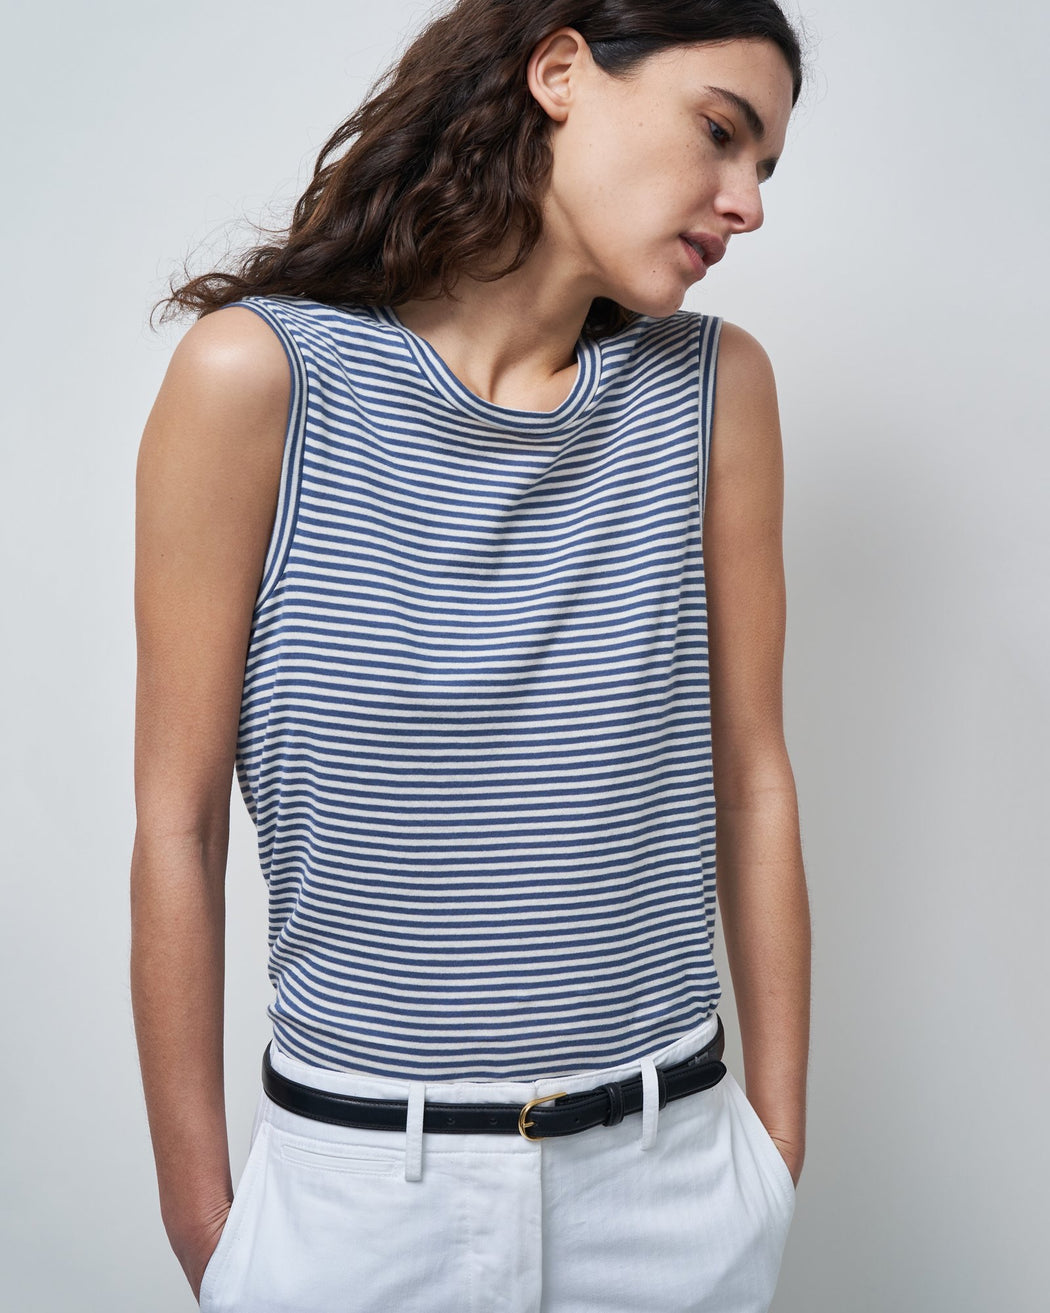 Nili Lotan Muscle Tee in Sailor Blue with White Stripe